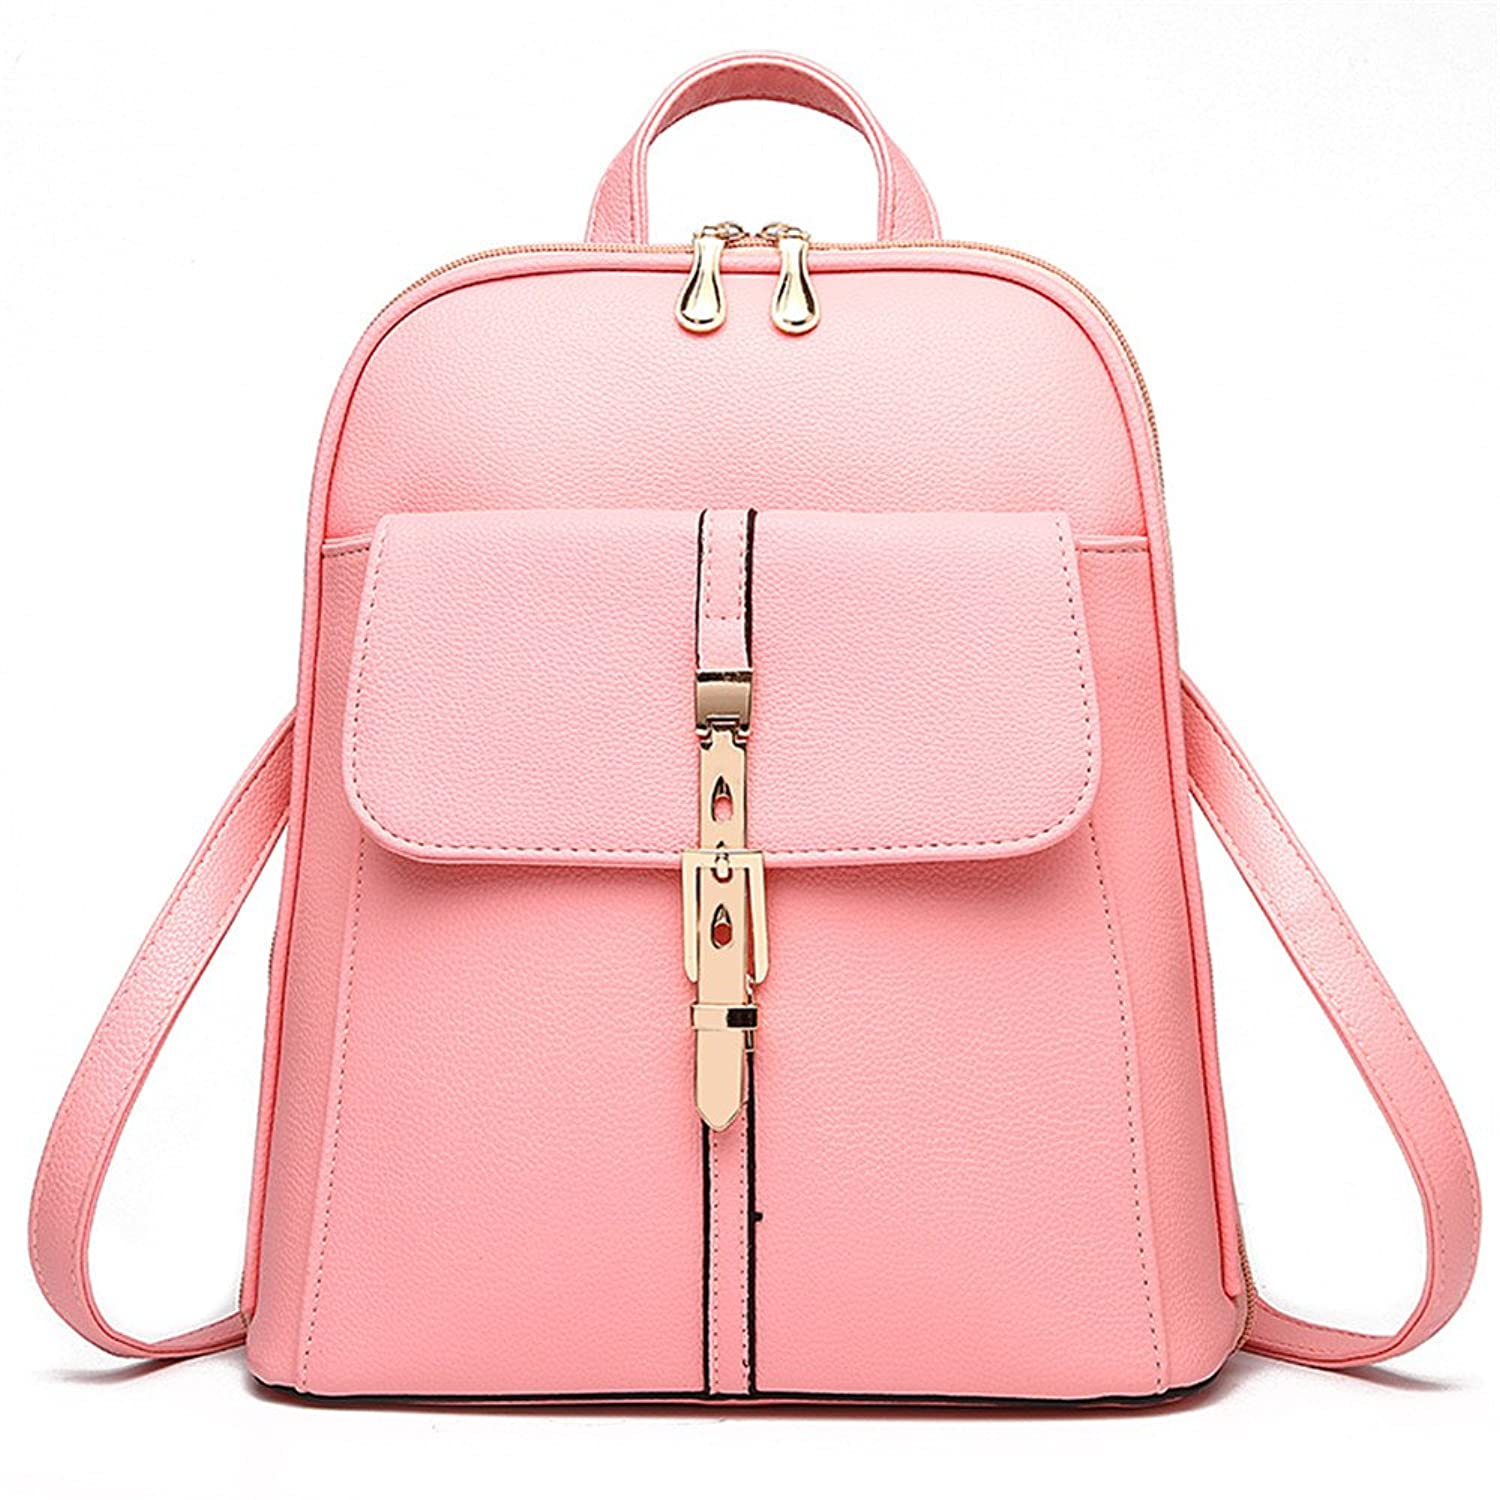 H.TAVEL@new Fashion Women Girl Leather Mini School Bag Travel Backpack Rucksack Shoulders Bag Satchel